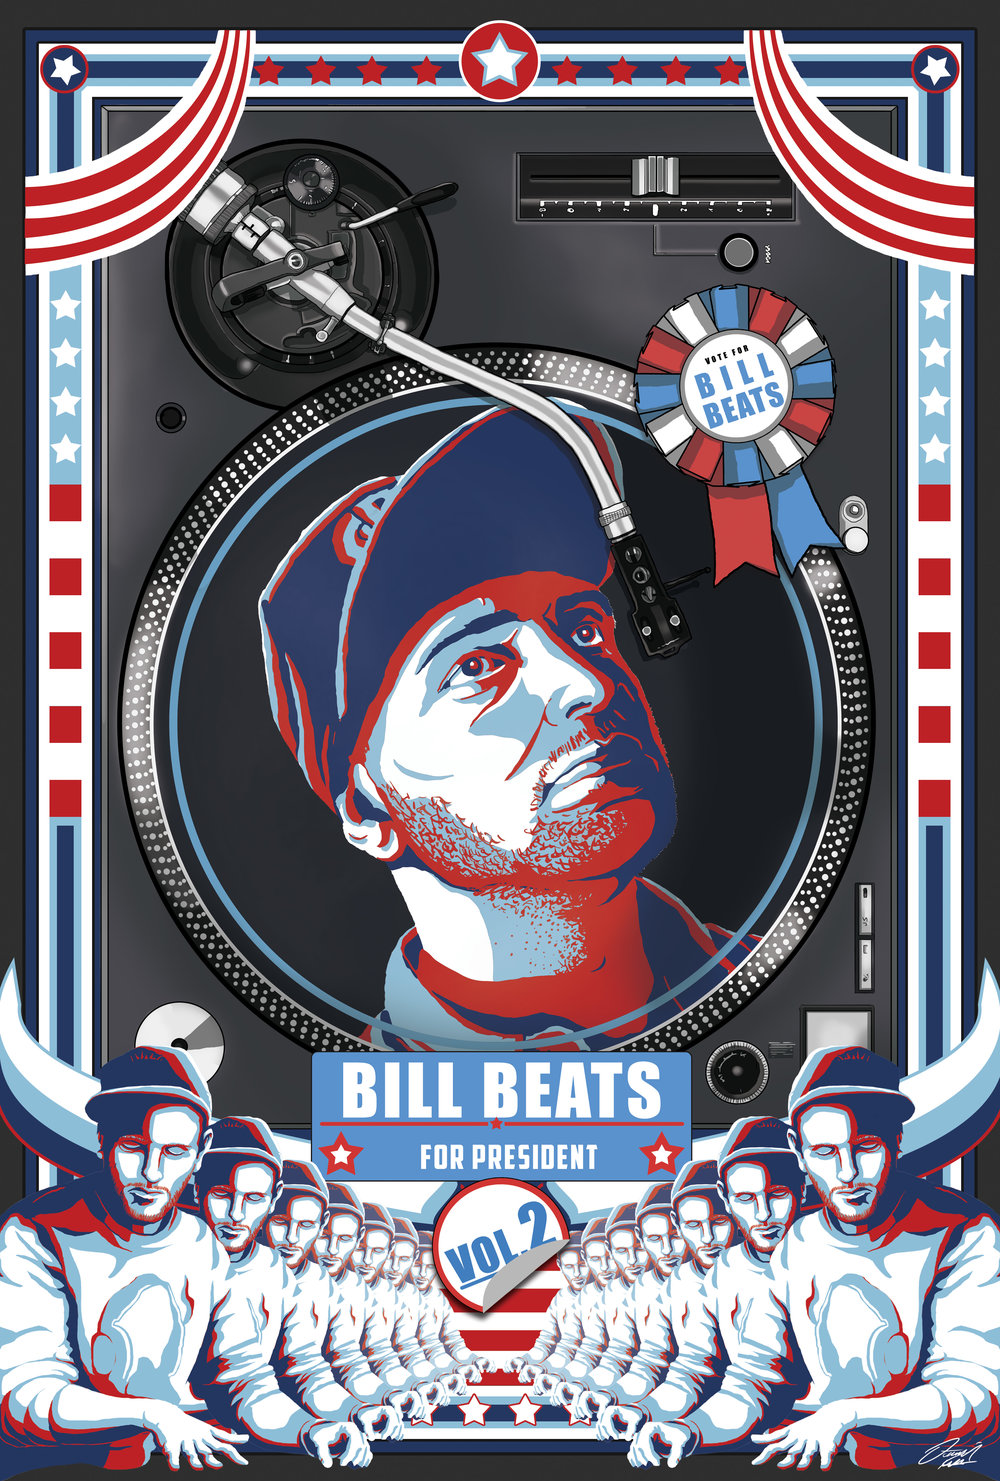 Bill Beats For President Vol. 2  Was a really neat and challenging new project for me, as it allowed me to experiment in a more minimalist stylised way, utilising just a handful of colours to create this presidential poster inspired art.